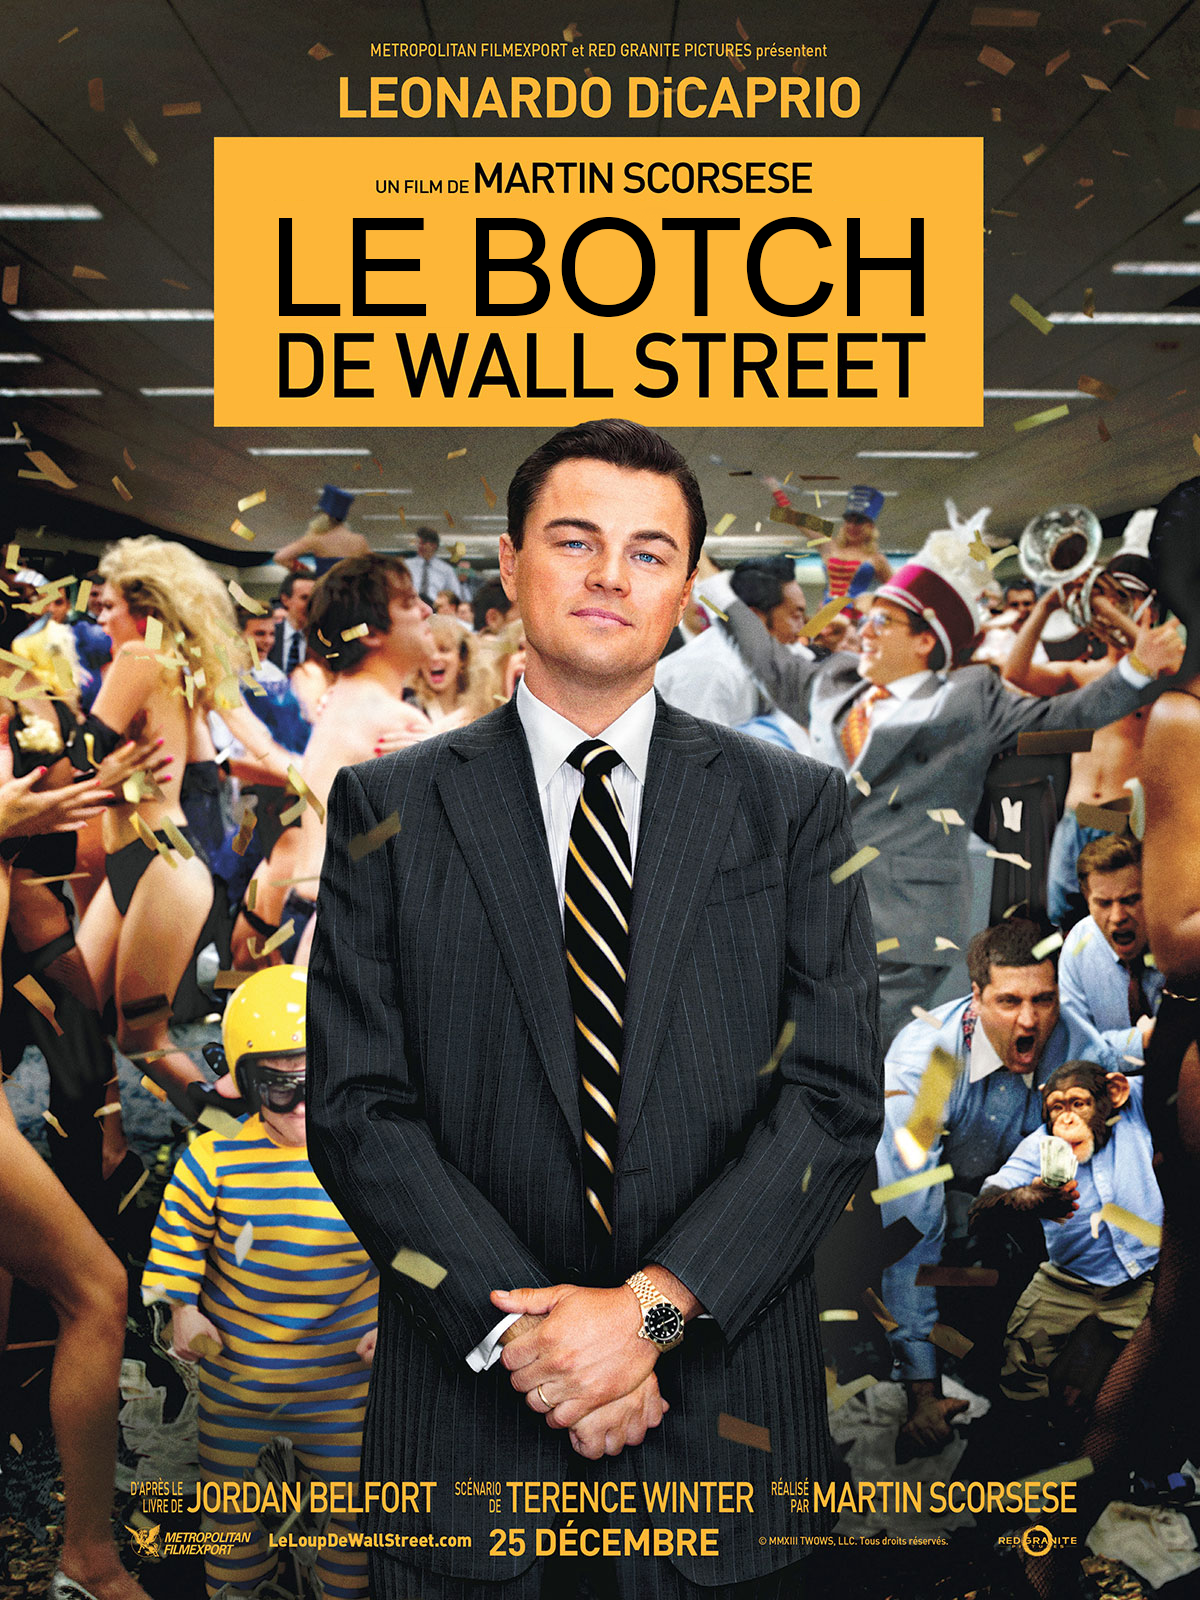 Le Botch de Wall Street